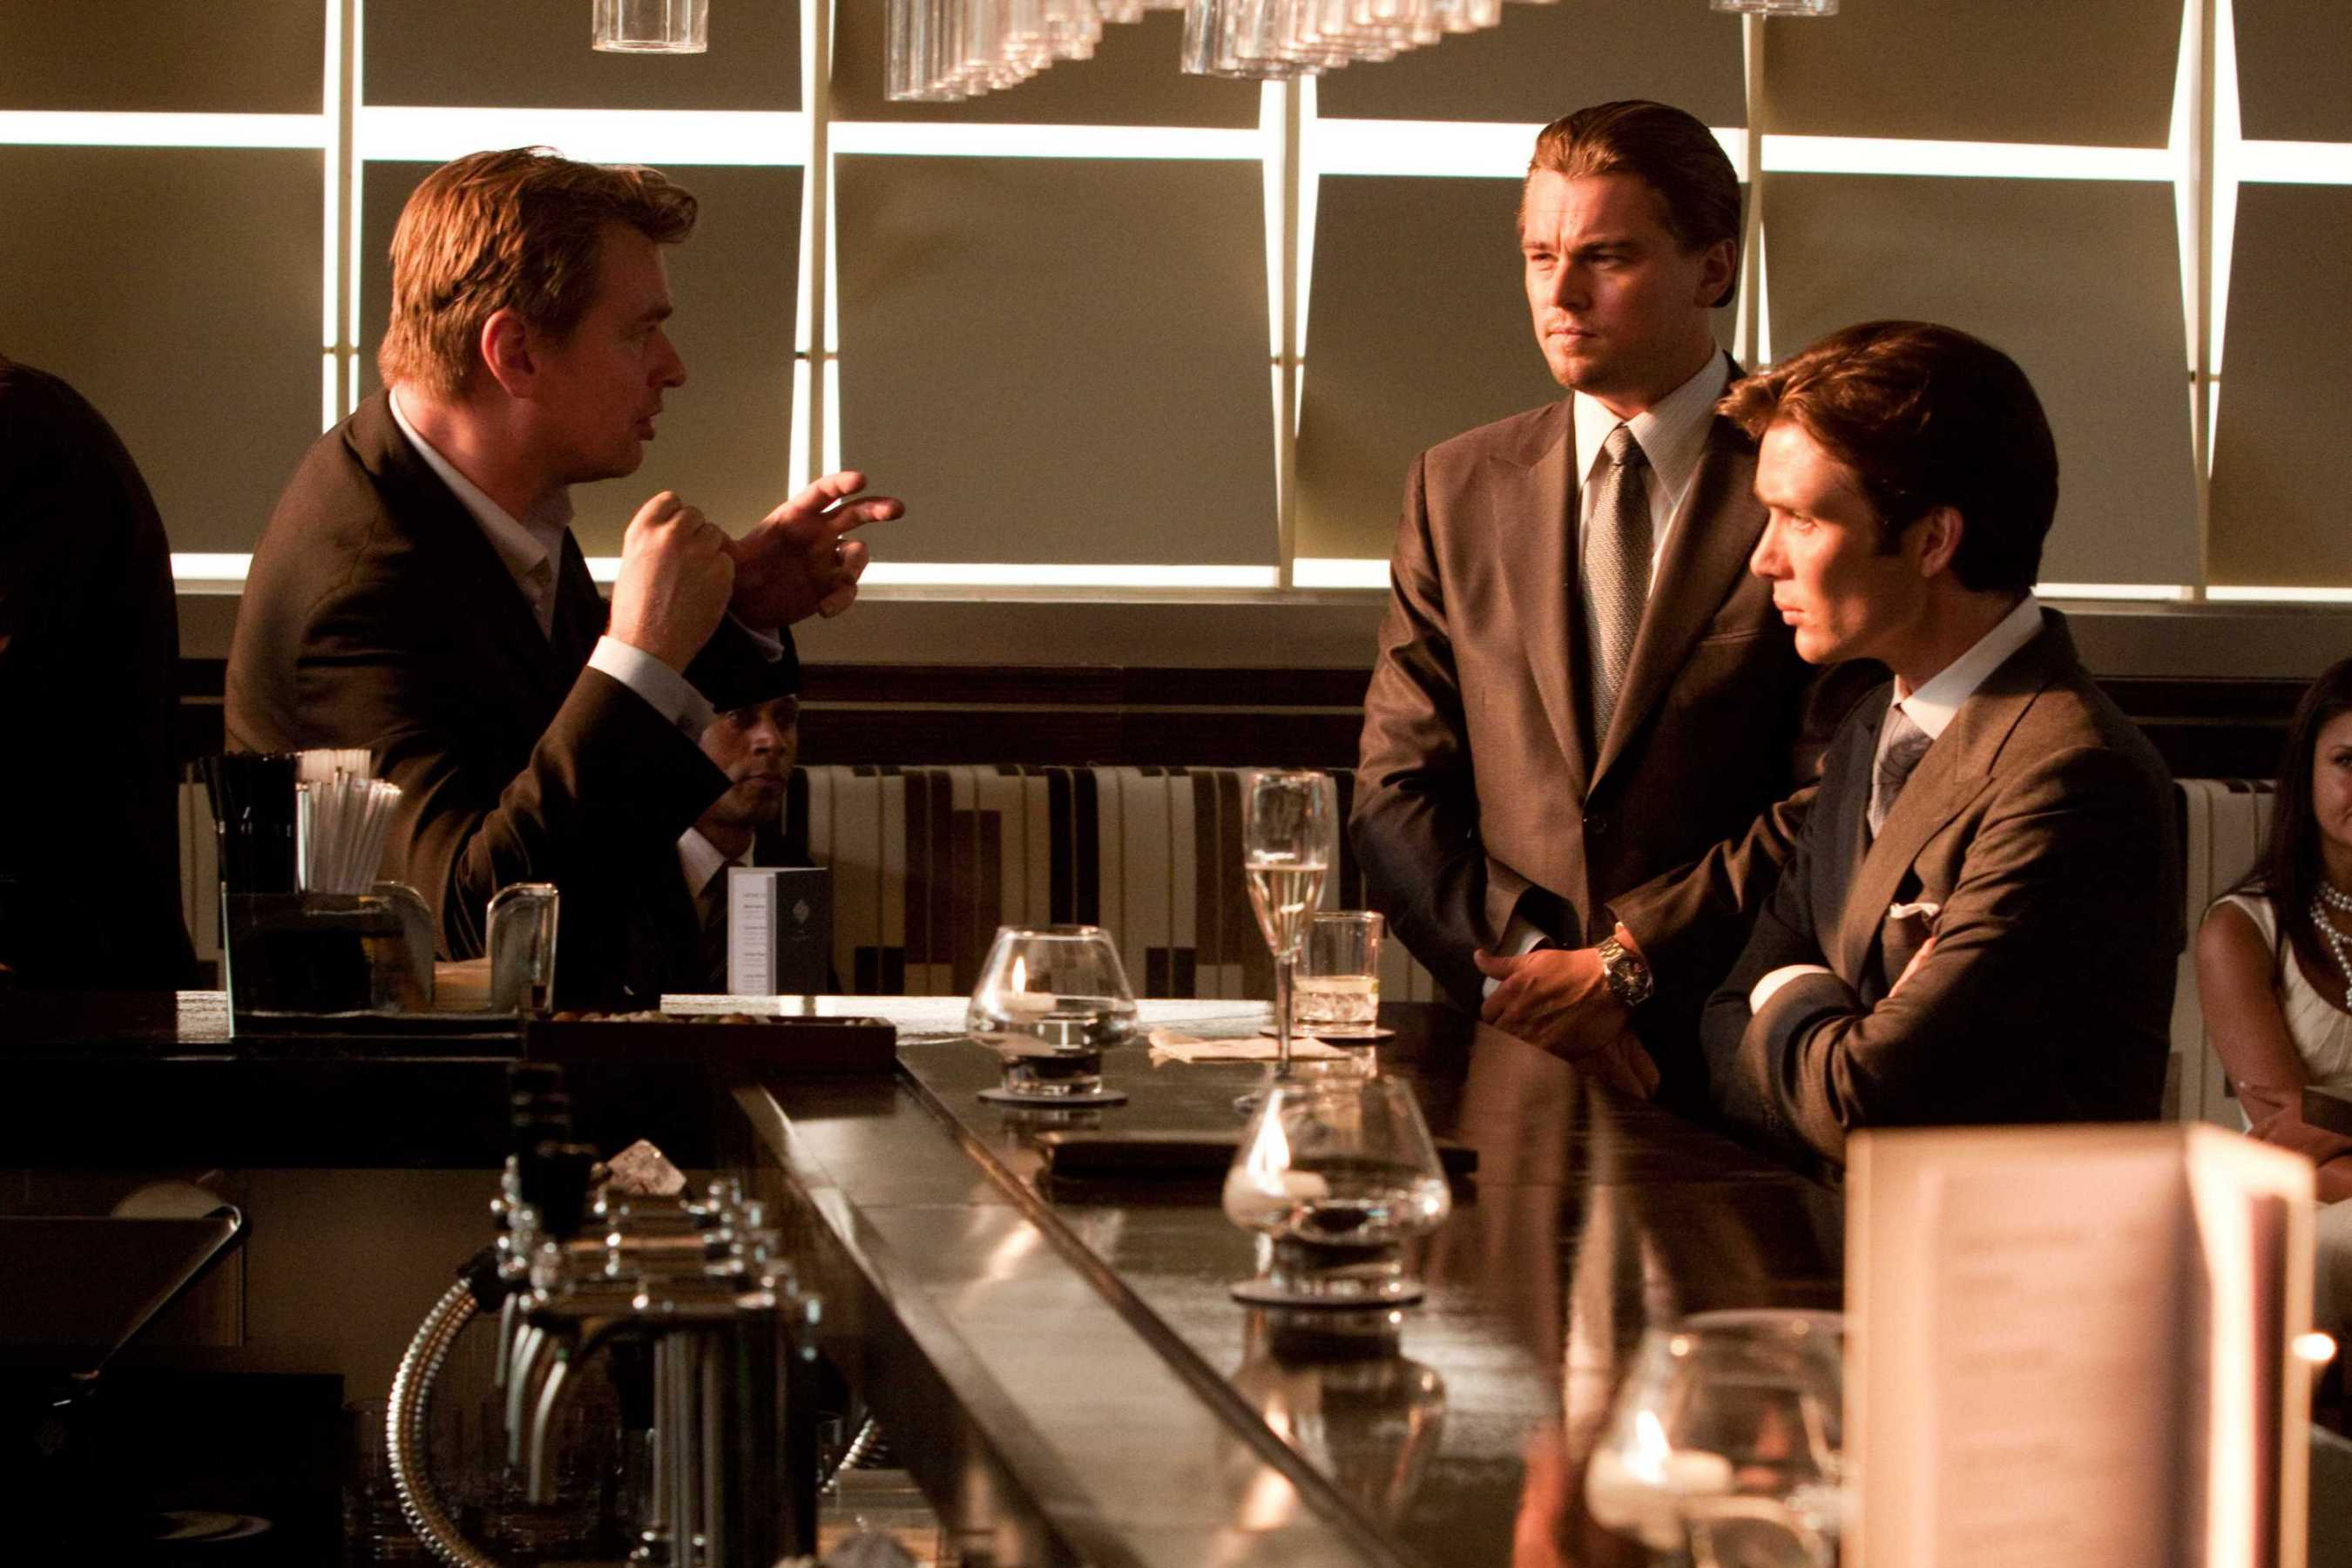 (L-r) Director CHRISTOPHER NOLAN with LEONARDO DiCAPRIO and CILLIAN MURPHY on the set of Warner Bros. PicturesÕ and Legendary PicturesÕ sci-fi action film ÒINCEPTION,Ó a Warner Bros. Pictures release.